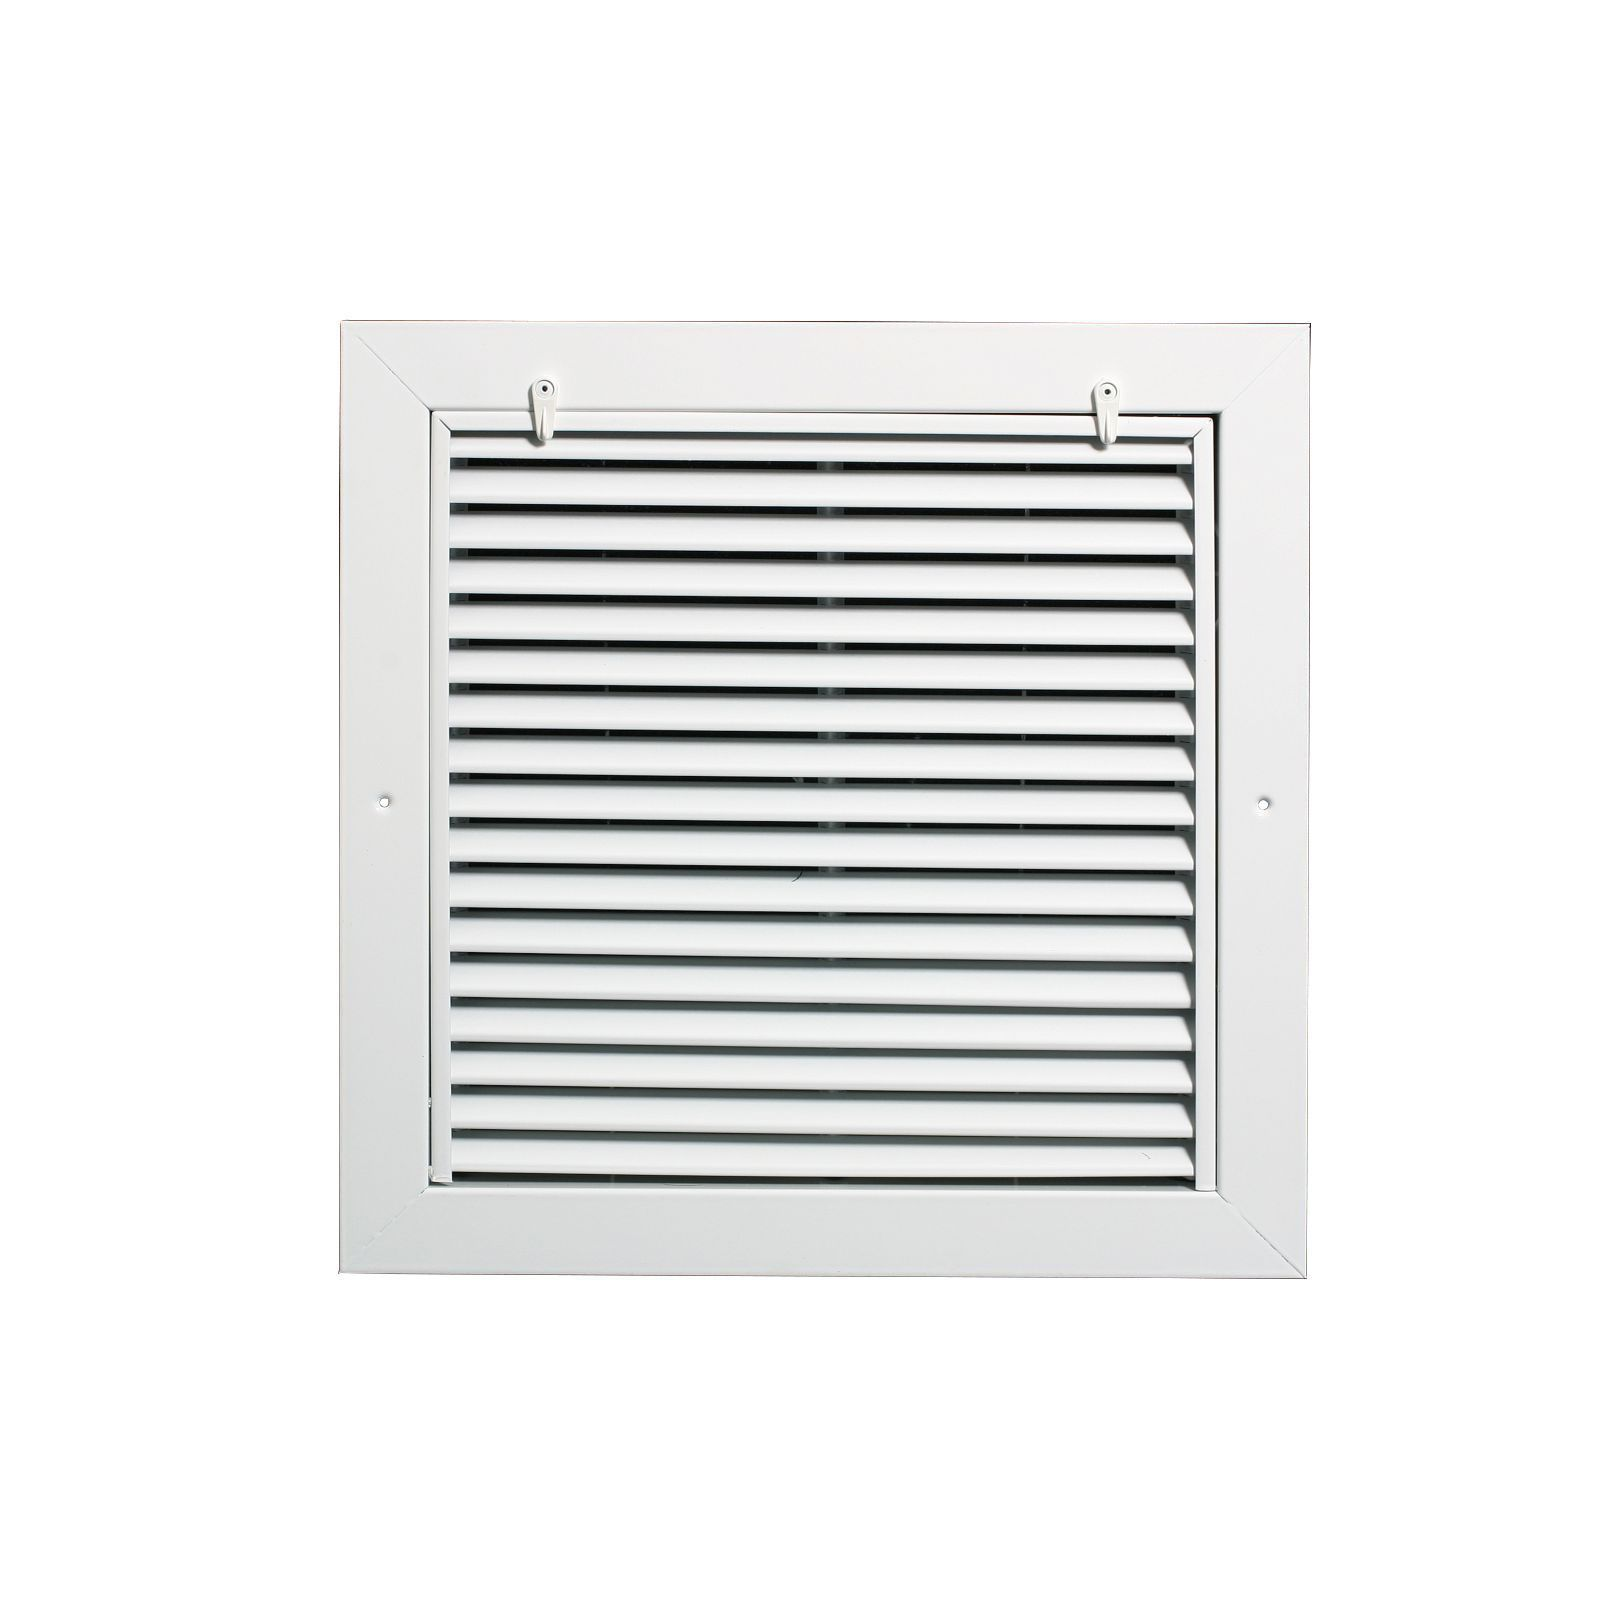 "Grille Tech RAFGS2030 - Aluminum Return Air Filter Grille, Grille Size 20"" X 30"" White"